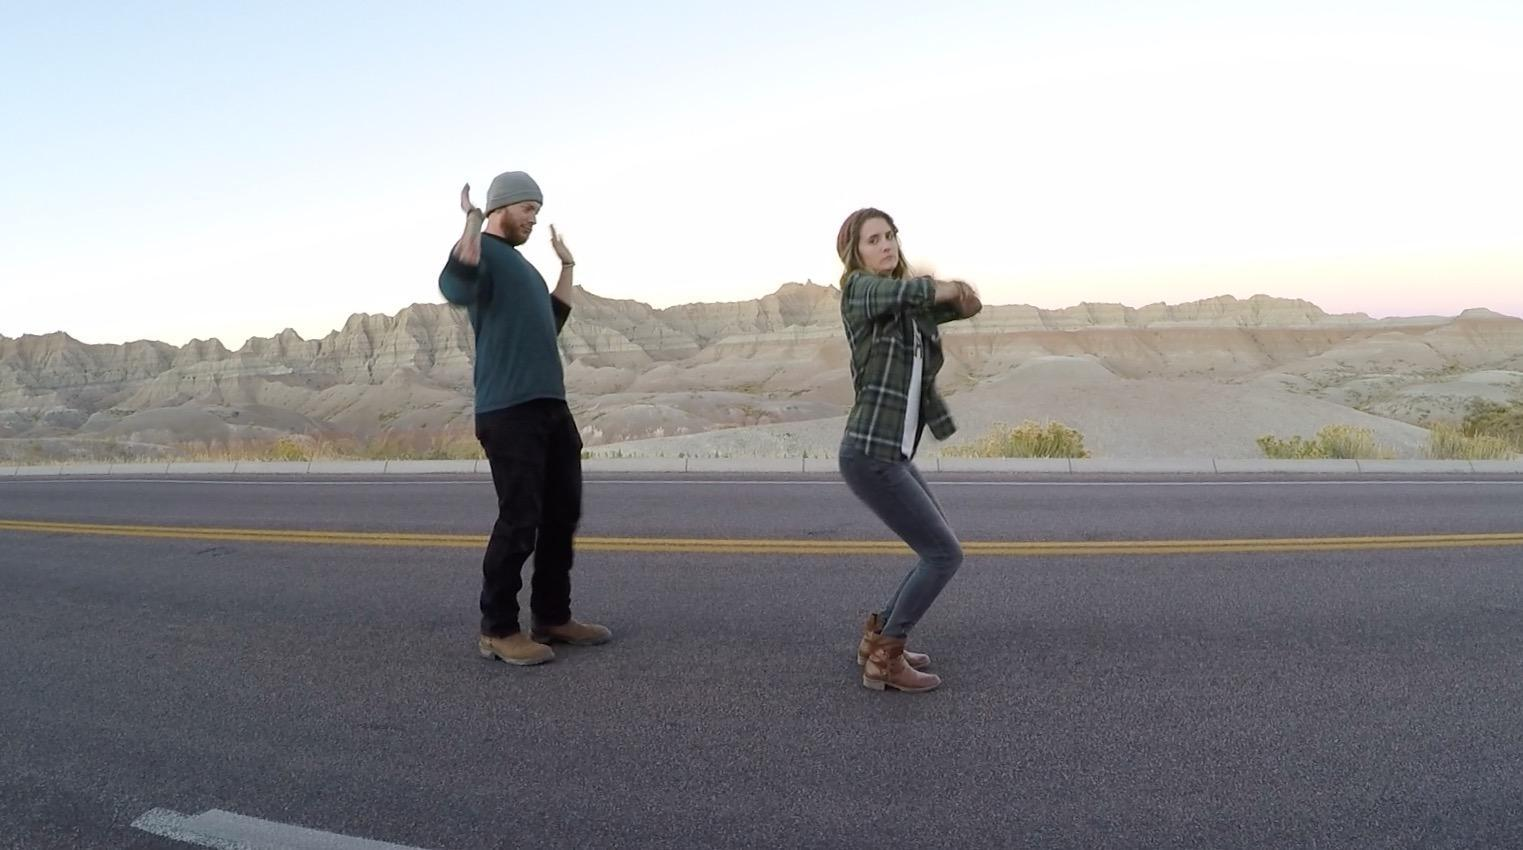 We dance everywhere, especially in streets...running through places like Badlands National Park